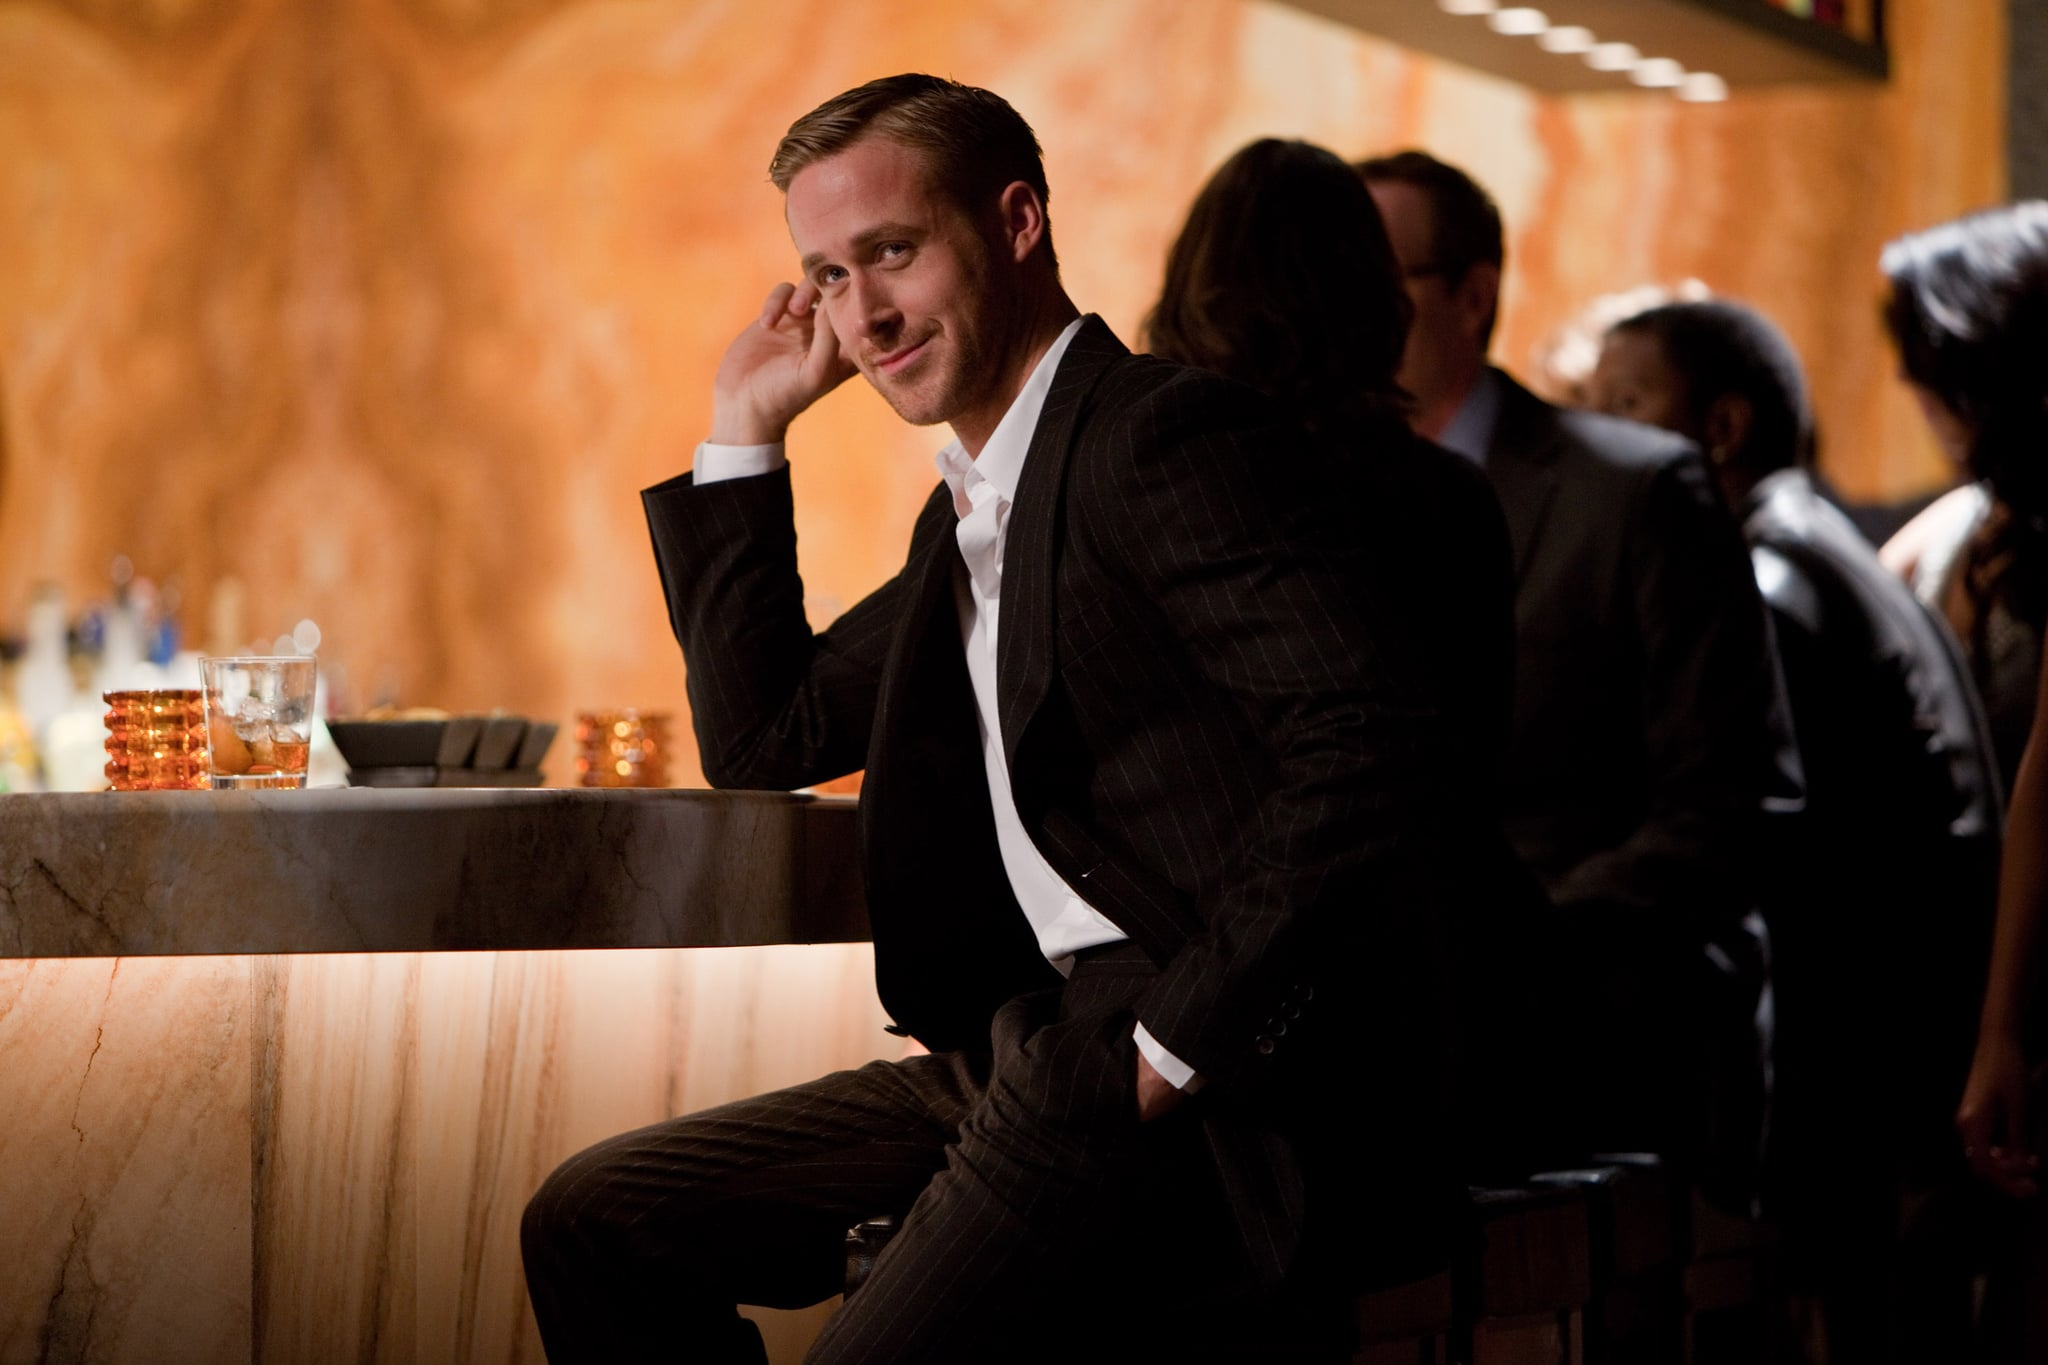 Ryan Gosling as Jacob in Crazy, Stupid, Love.